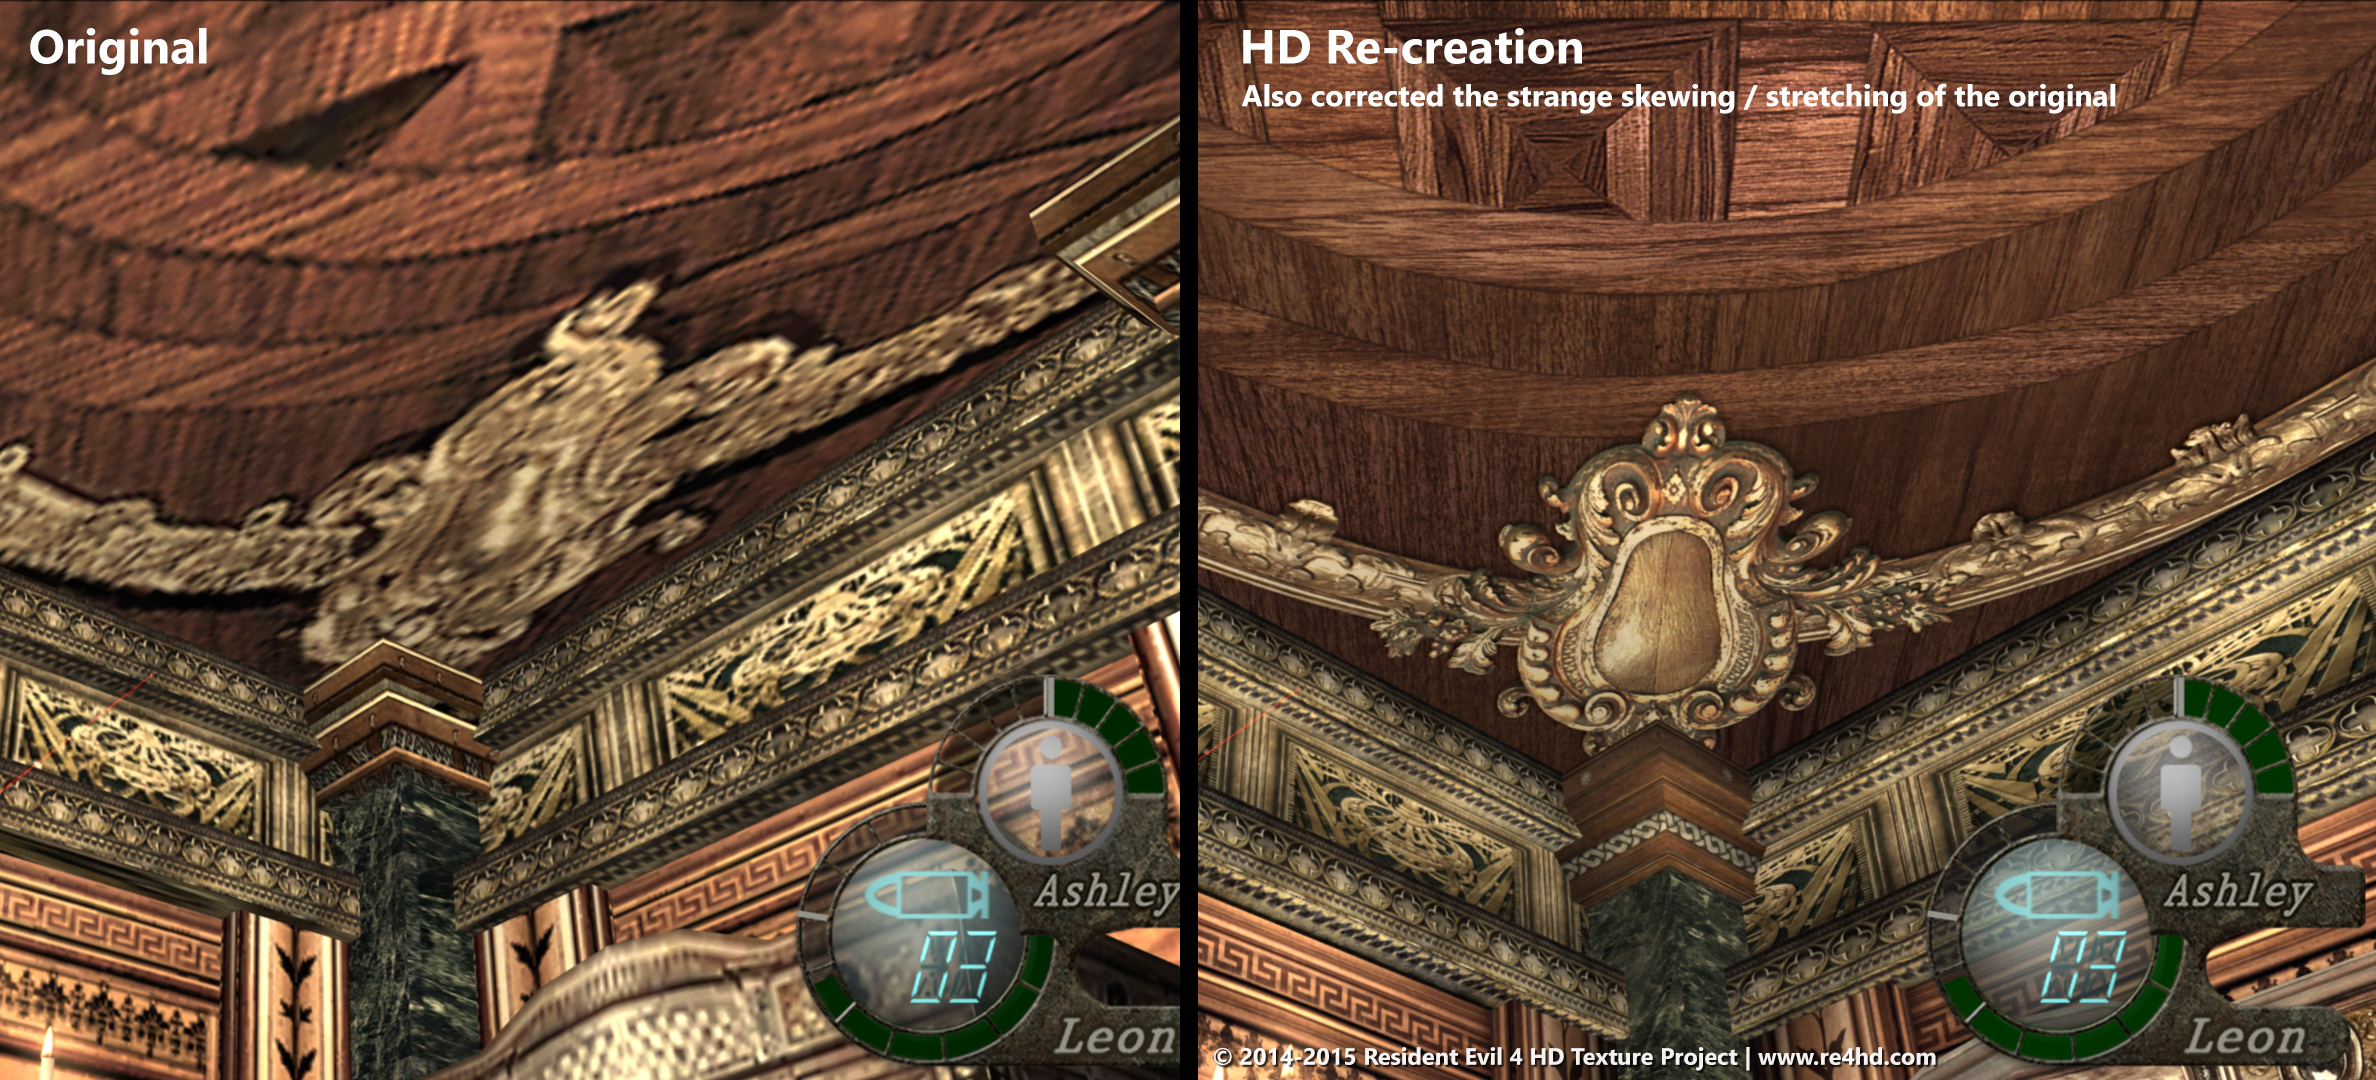 resident-evil-4-hd-project-is-making-graphics-even-more-hd-006